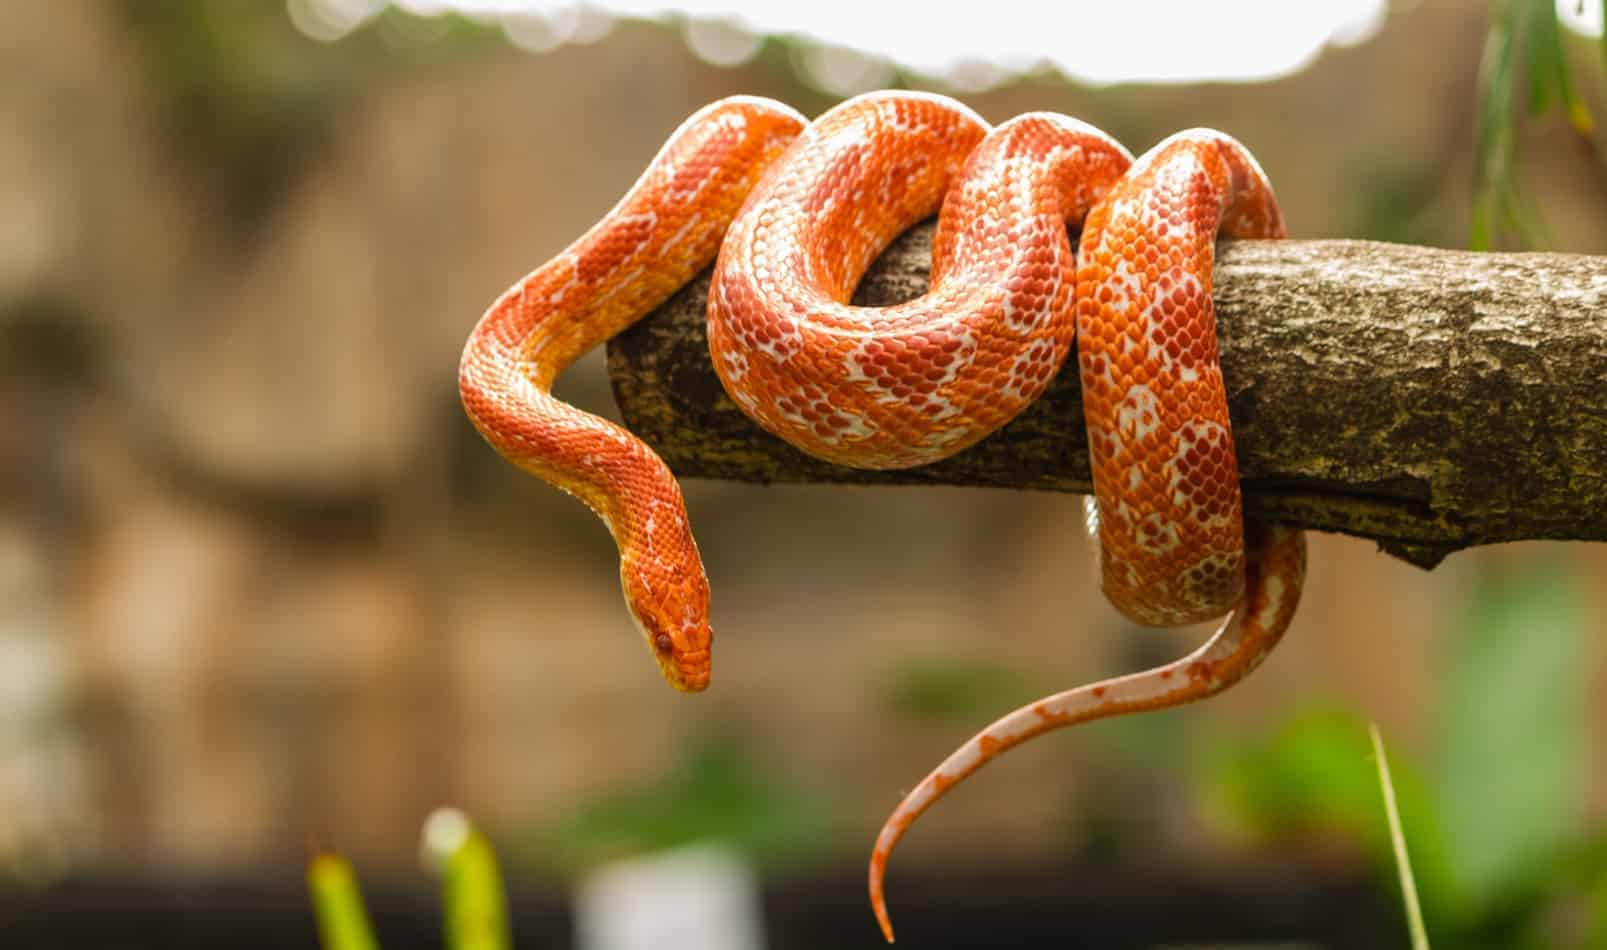 How Big Do Corn Snakes Get (And How Long Does it Take For Them to Grow)?